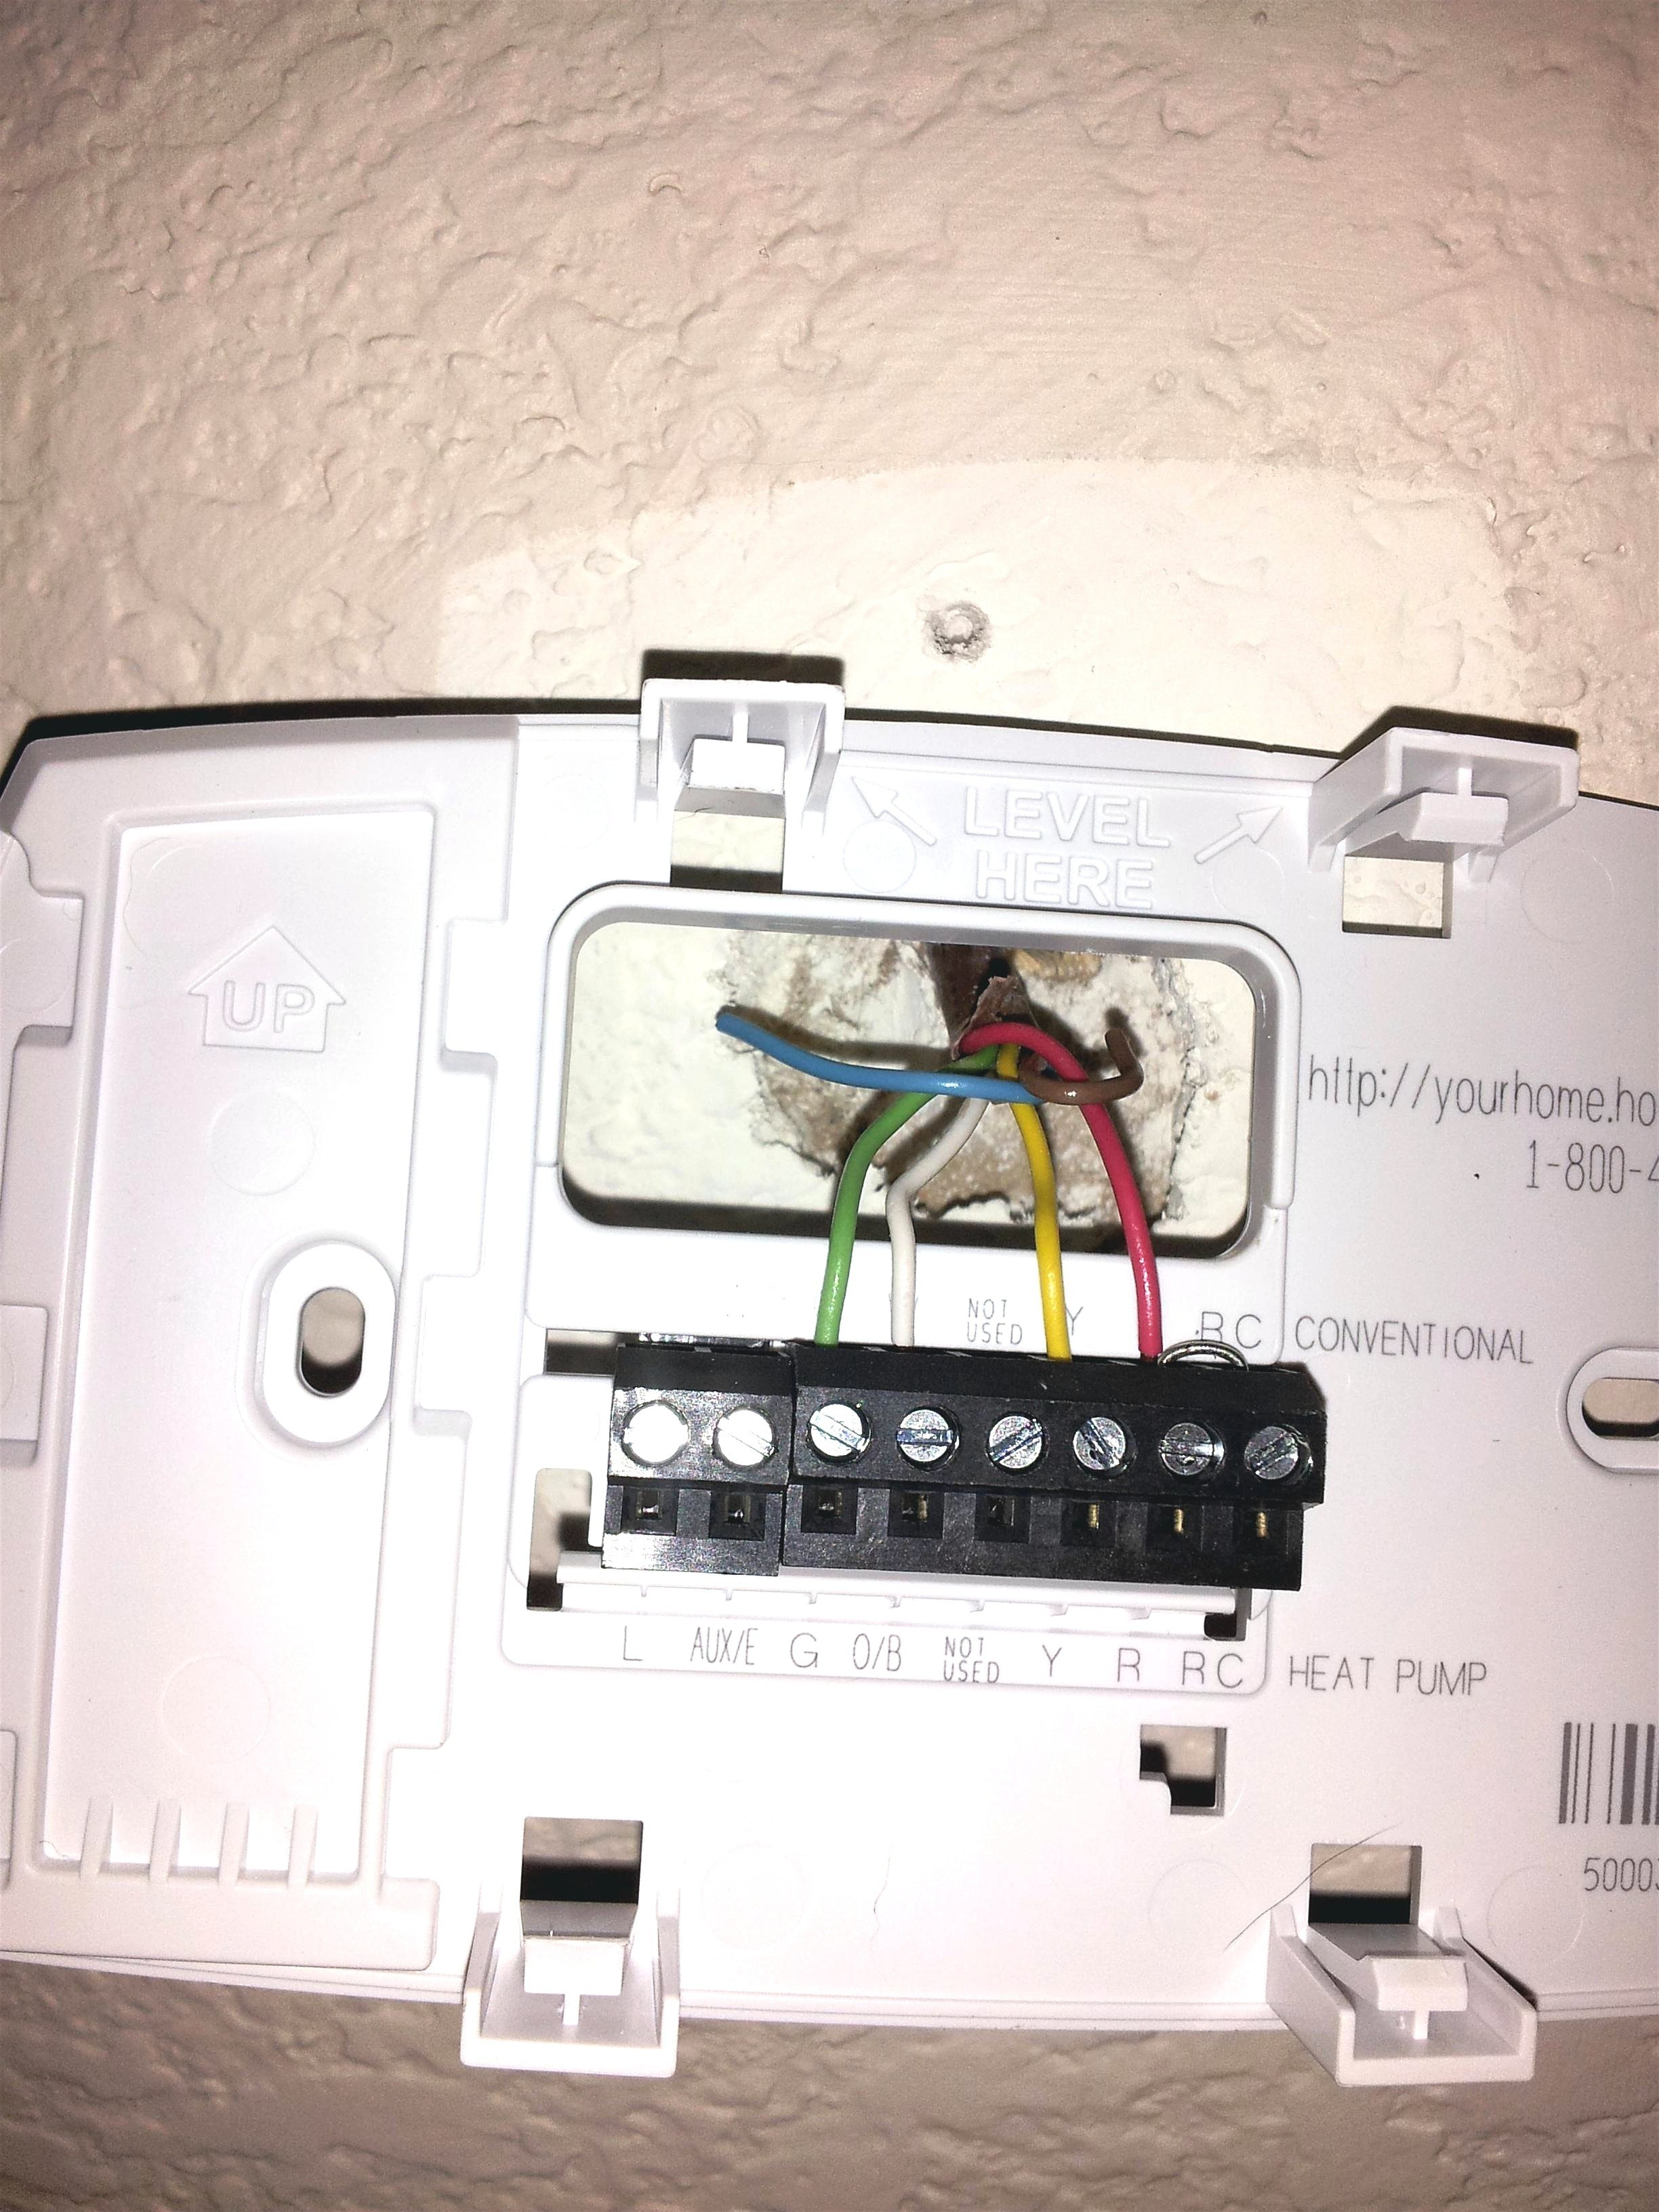 Honeywell Heat Pump thermostat Wiring Diagram Wiring Diagram for Honeywell Digital thermostat Inspirationa Of Honeywell Heat Pump thermostat Wiring Diagram